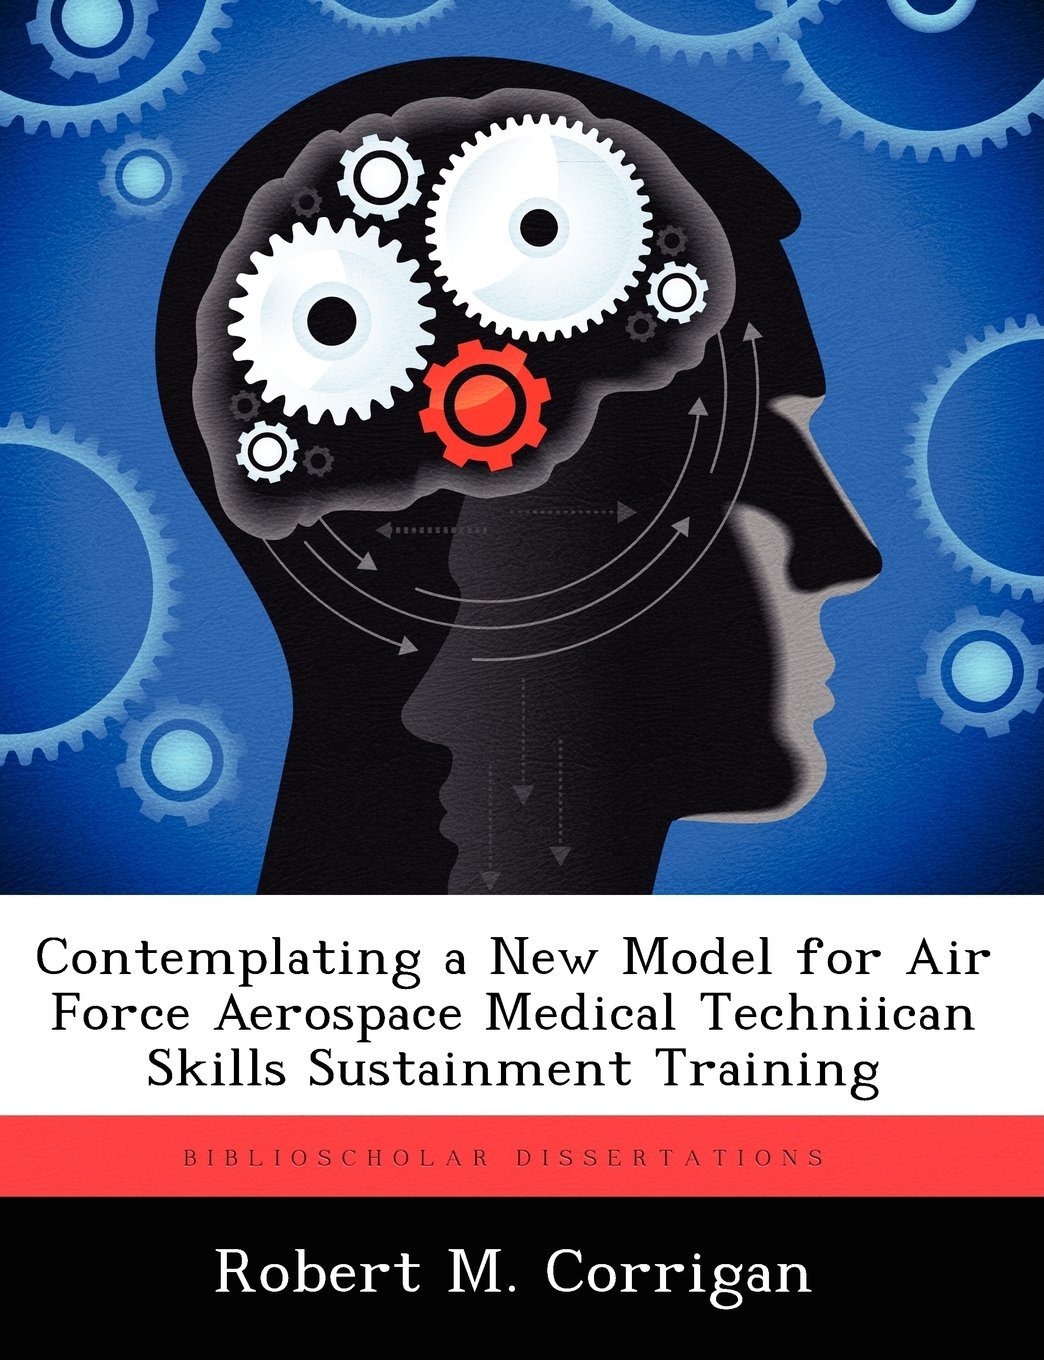 Download Contemplating a New Model for Air Force Aerospace Medical Techniican Skills Sustainment Training ebook